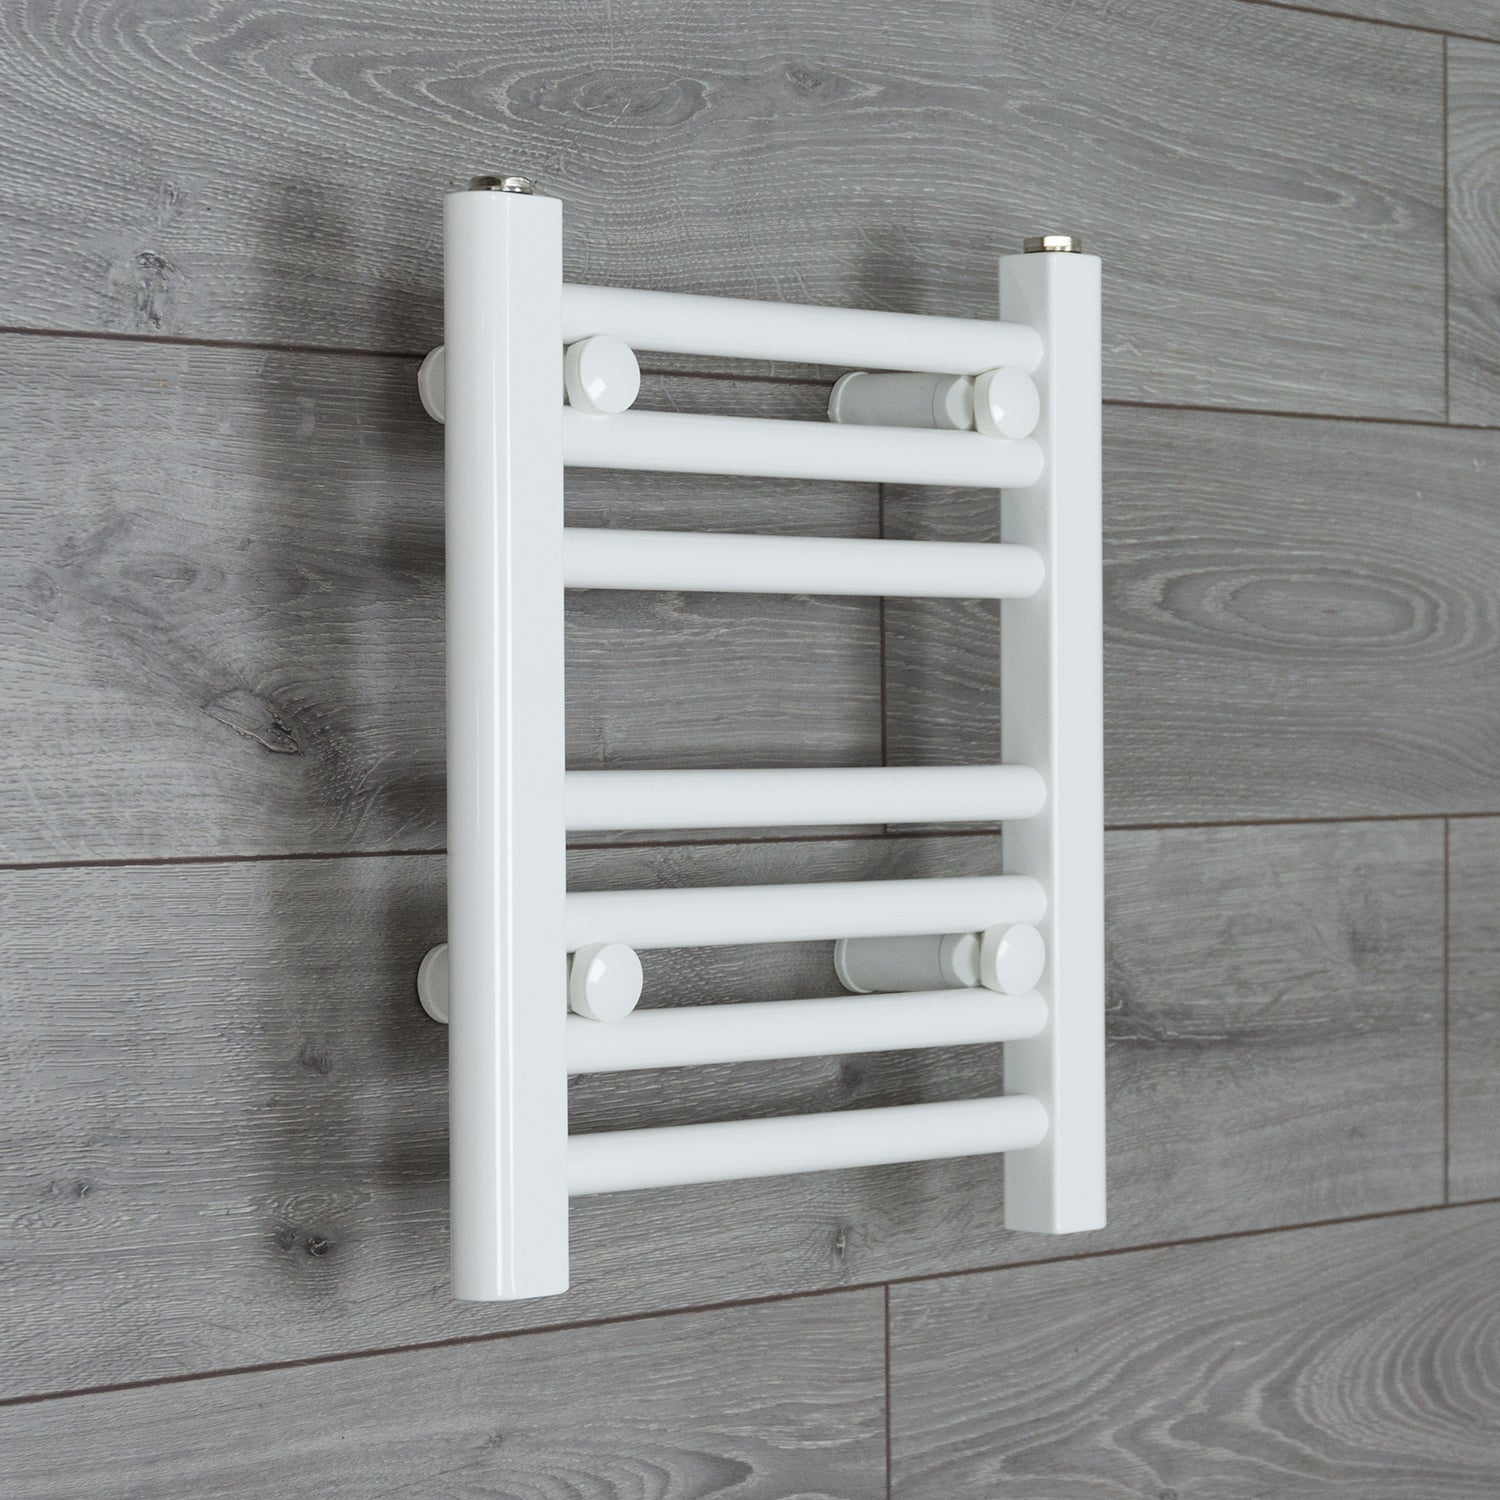 400mm Wide 400mm High Flat WHITE Pre-Filled Electric Heated Towel Rail Radiator HTR